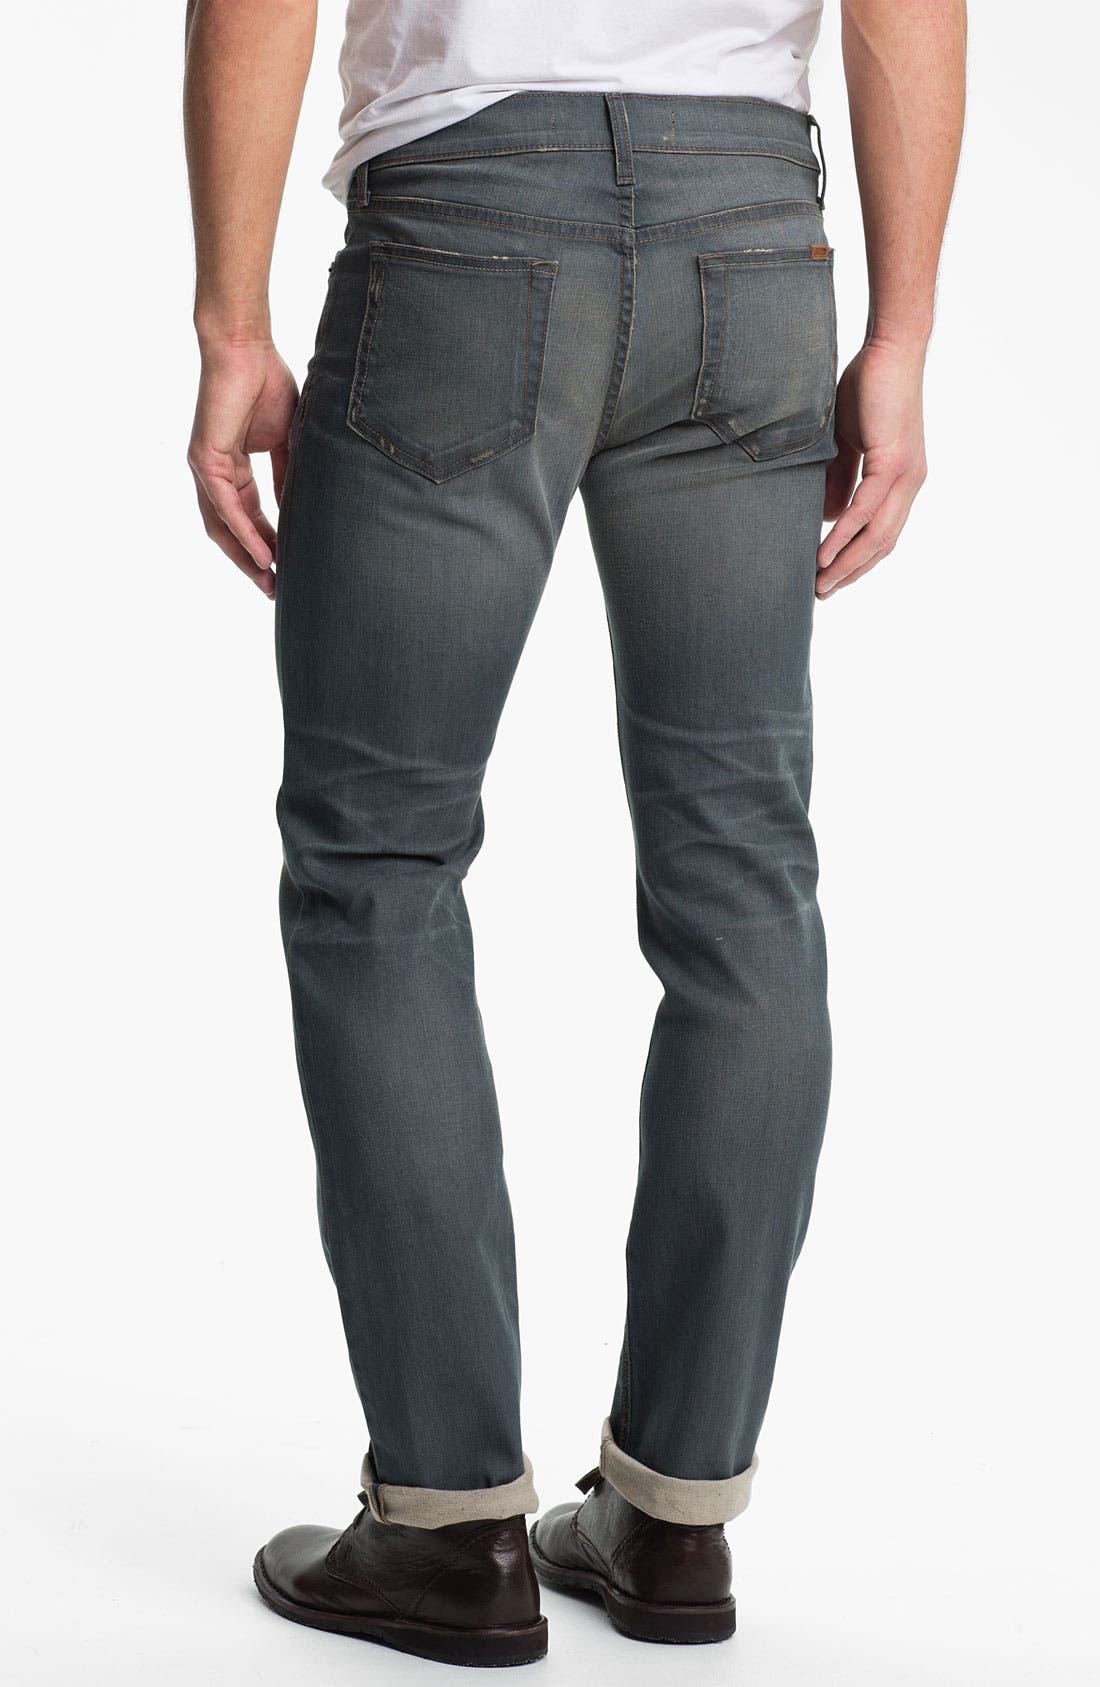 Alternate Image 1 Selected - Joe's 'Brixton' Slim Straight Leg Jeans (Ewan)